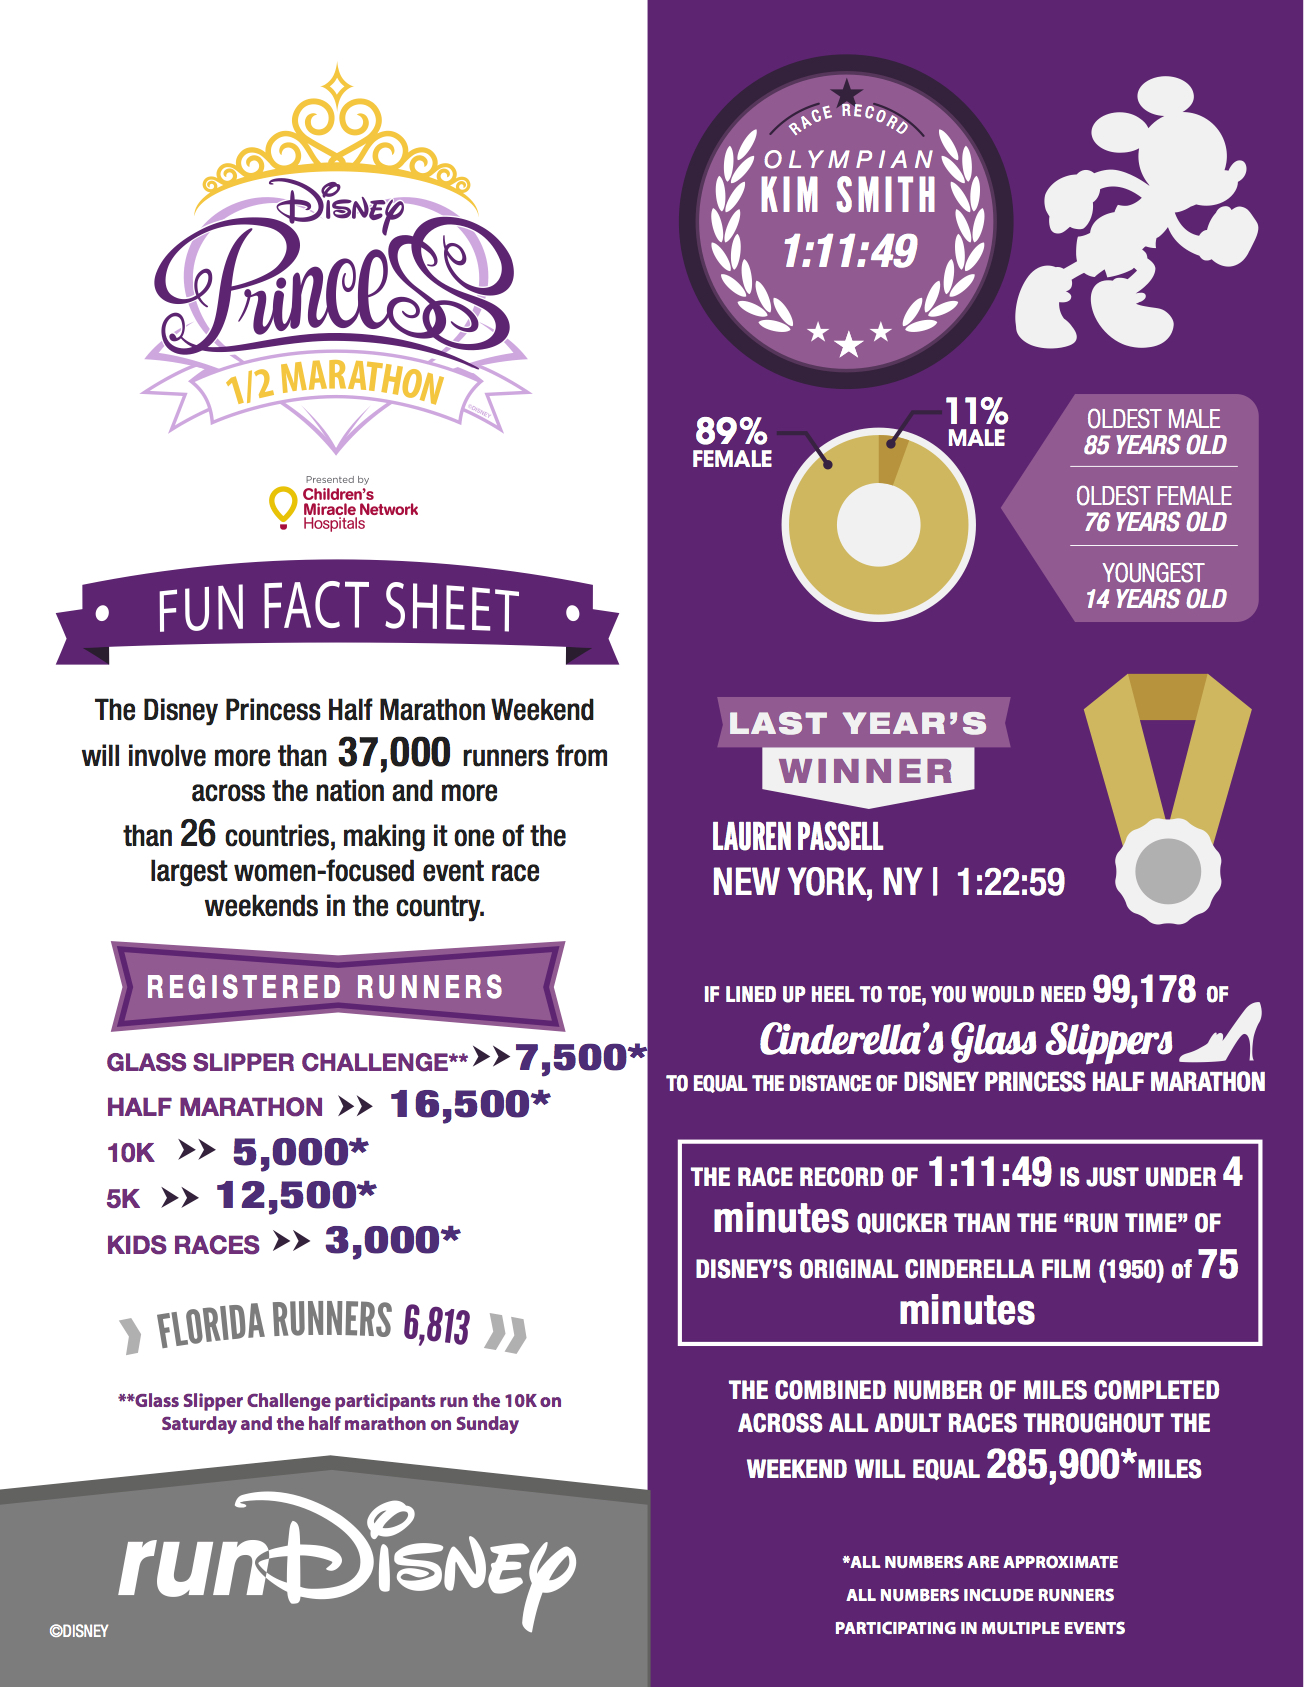 runDisney_Fact_Sheet_Princess copy